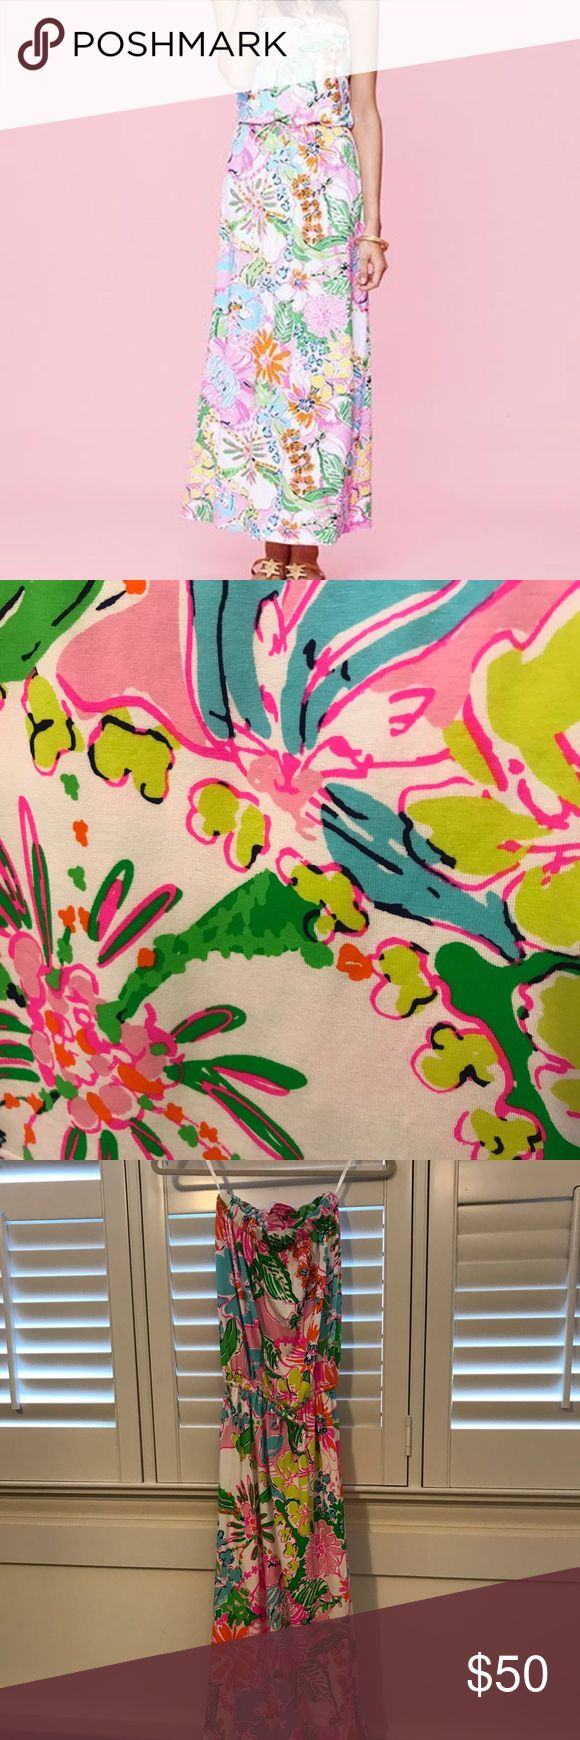 Lilly Pulitzer for Target Strapless Maxi Dress  XS Lilly Pulitzer for Target Strapless Maxi Dress  XS. I have never worn this dress; in perfect condition. Lilly Pulitzer for Target Dresses Maxi